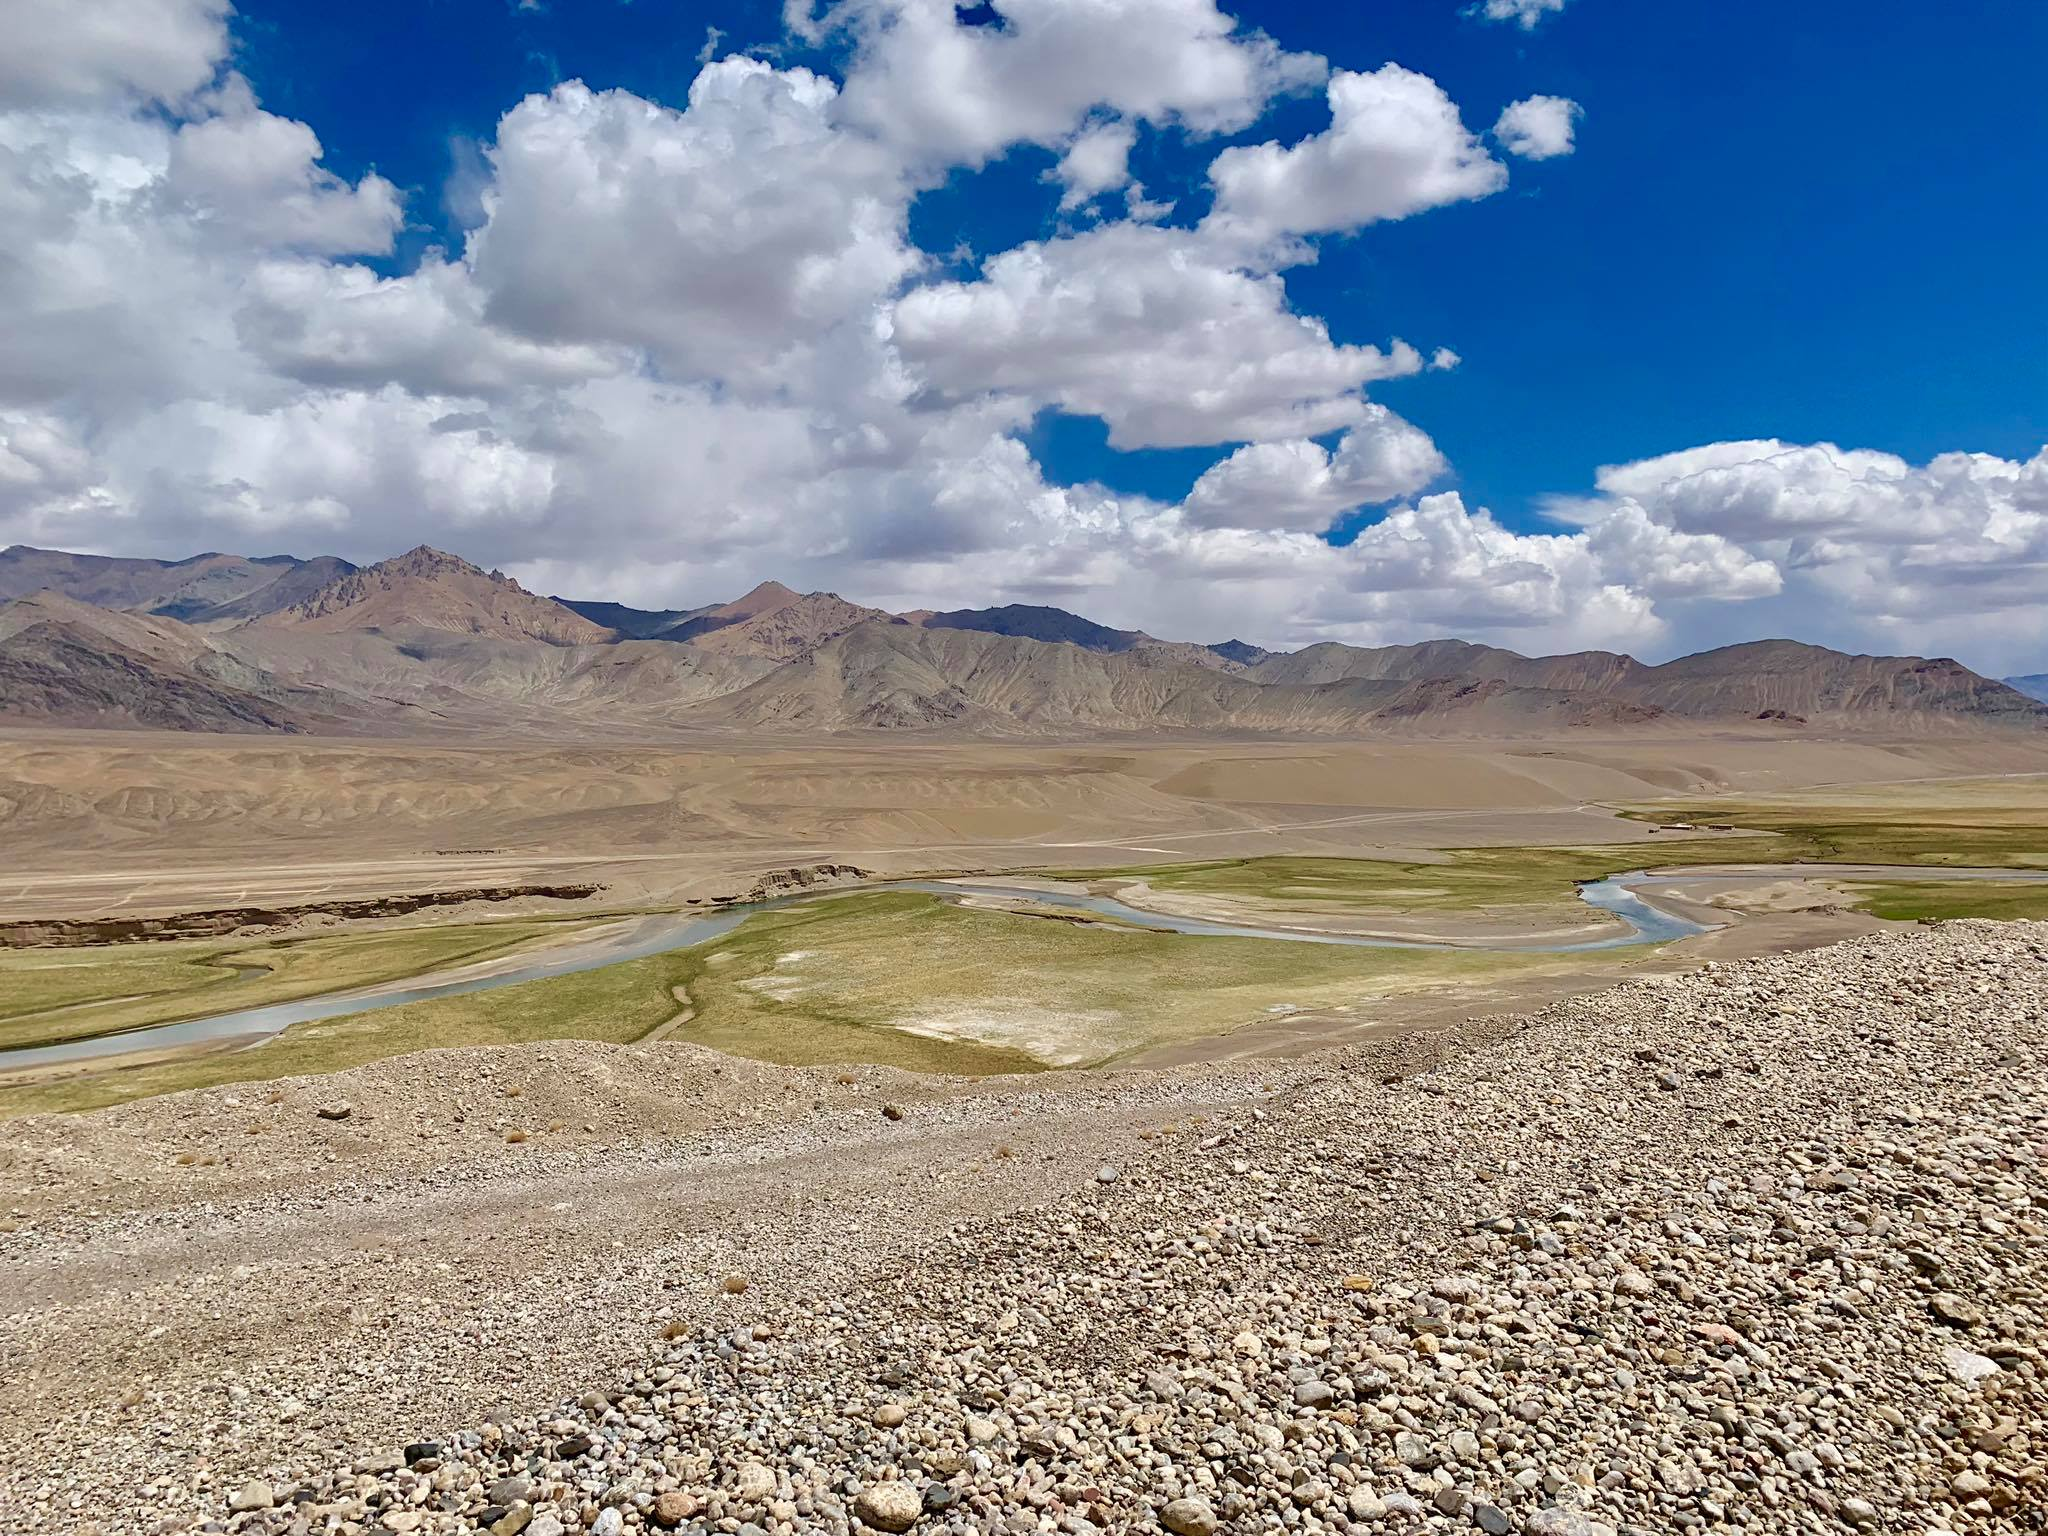 Kach Solo Travels in 2019 Our unexpected last stop during our Pamir Highway Roadtrip6.jpg